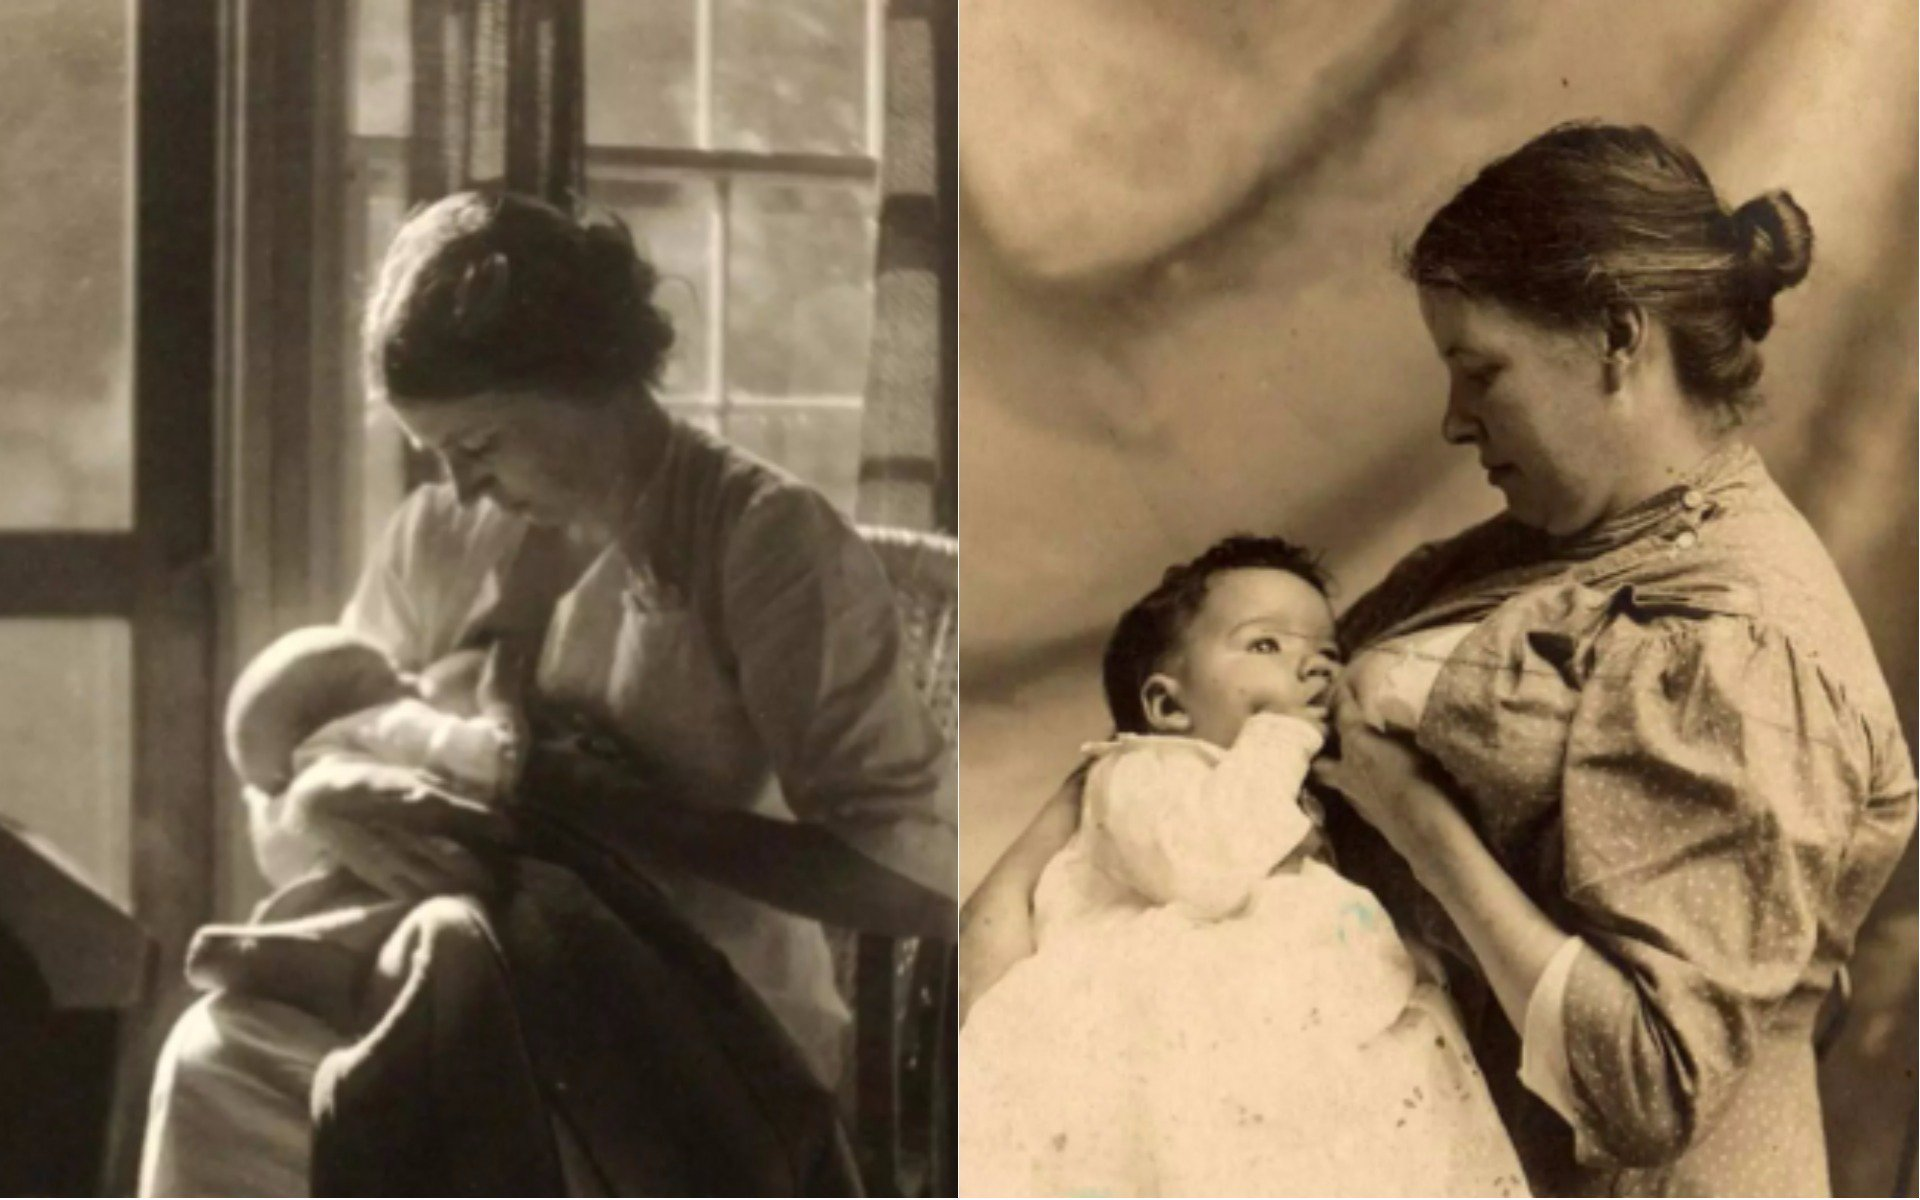 Incredible pictures show Victorian women breastfeeding in public with pride https://t.co/1ldL7M5eWg https://t.co/gdZikkYe7w